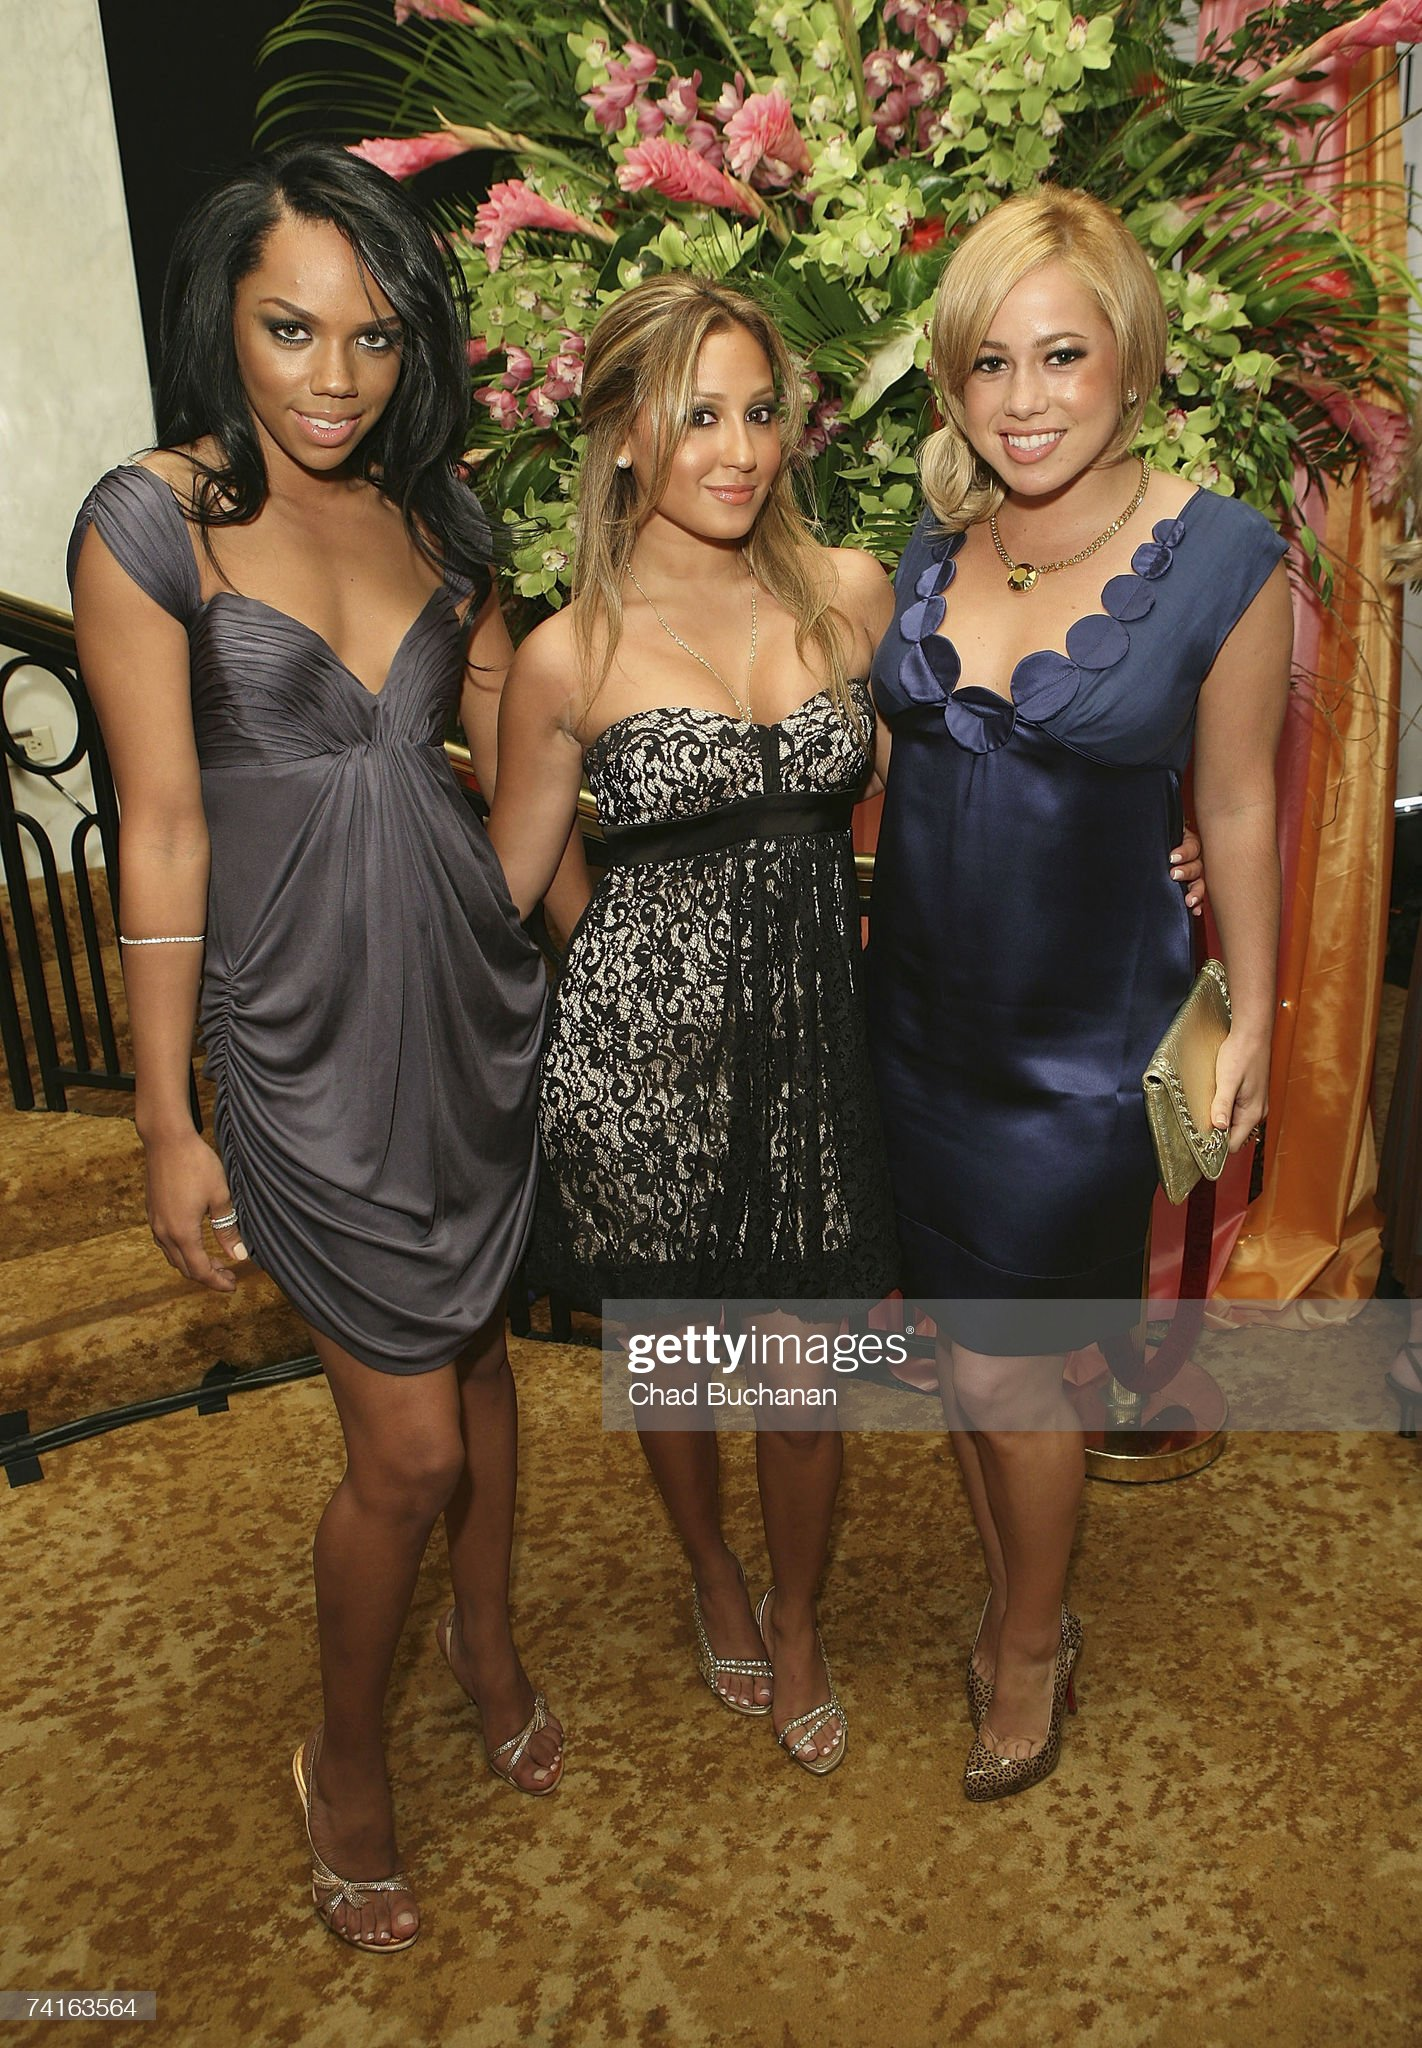 ¿Cuánto mide Adrienne Bailon? - Real height Kiely-williams-adrienne-bailon-and-sabrina-bryan-of-the-cheetah-girls-picture-id74163564?s=2048x2048